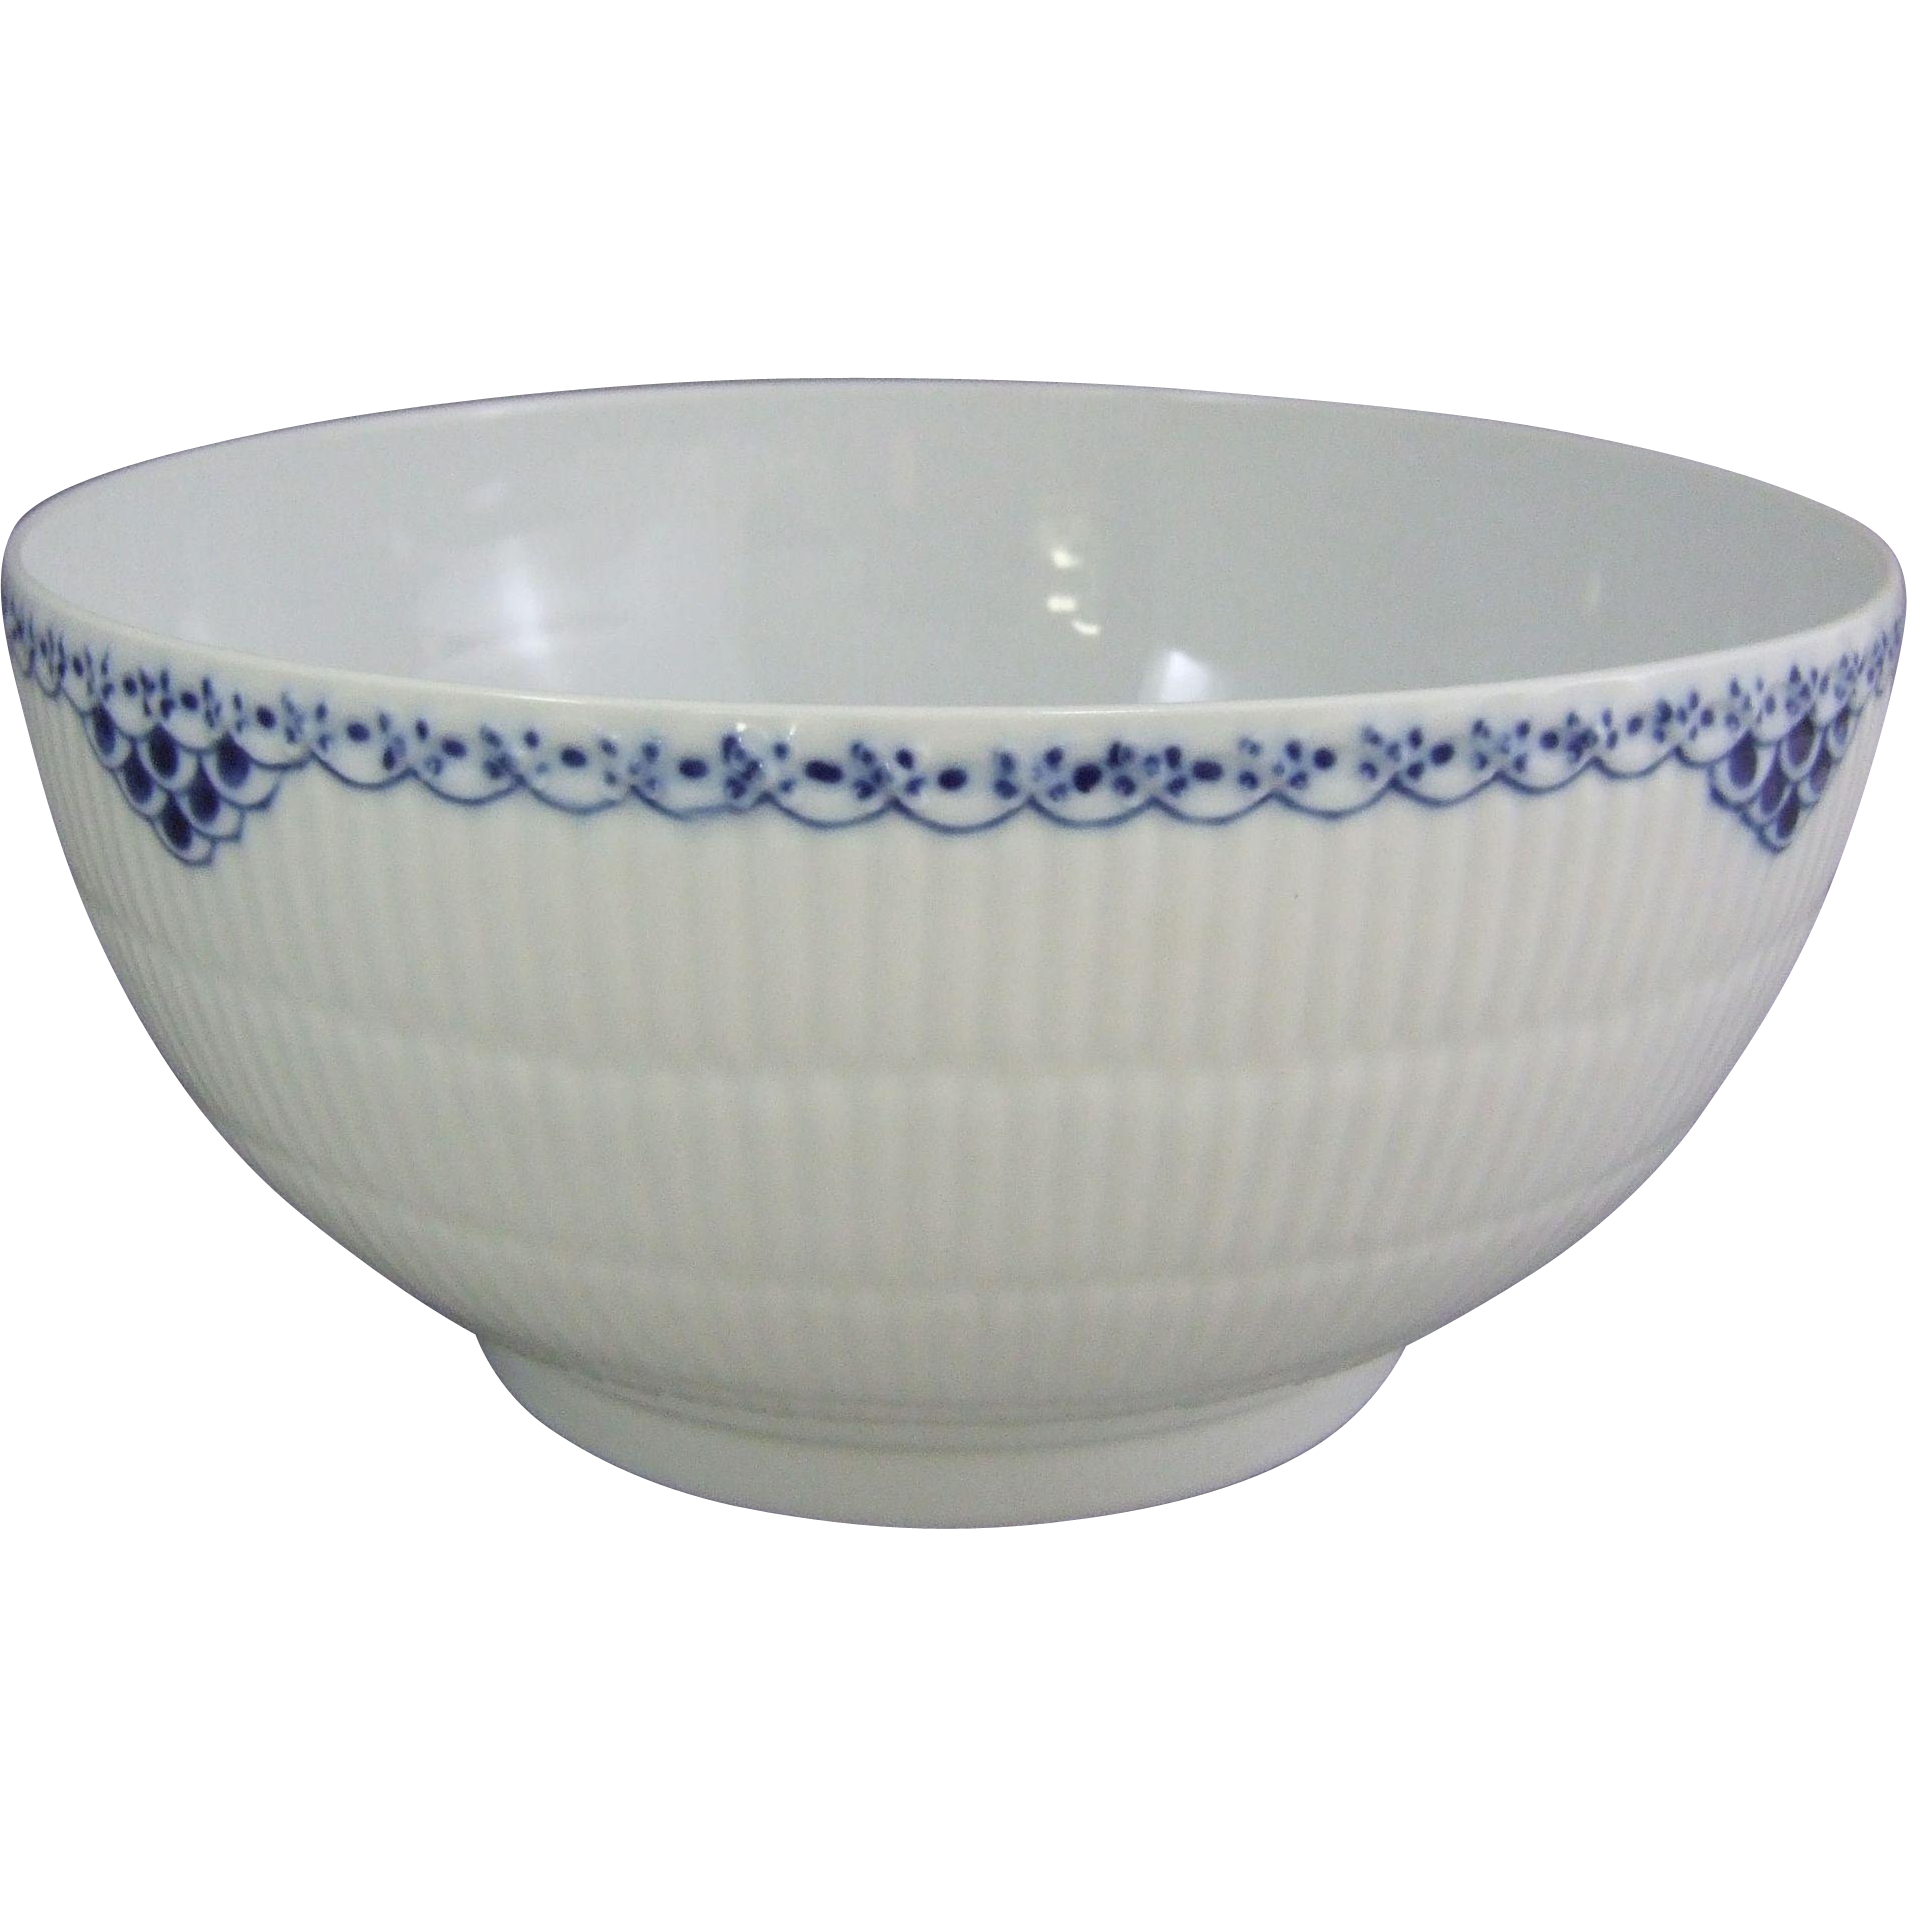 Royal Copenhagen Princess Bowl Décor 1104 Round Salad Bowl 9.25""